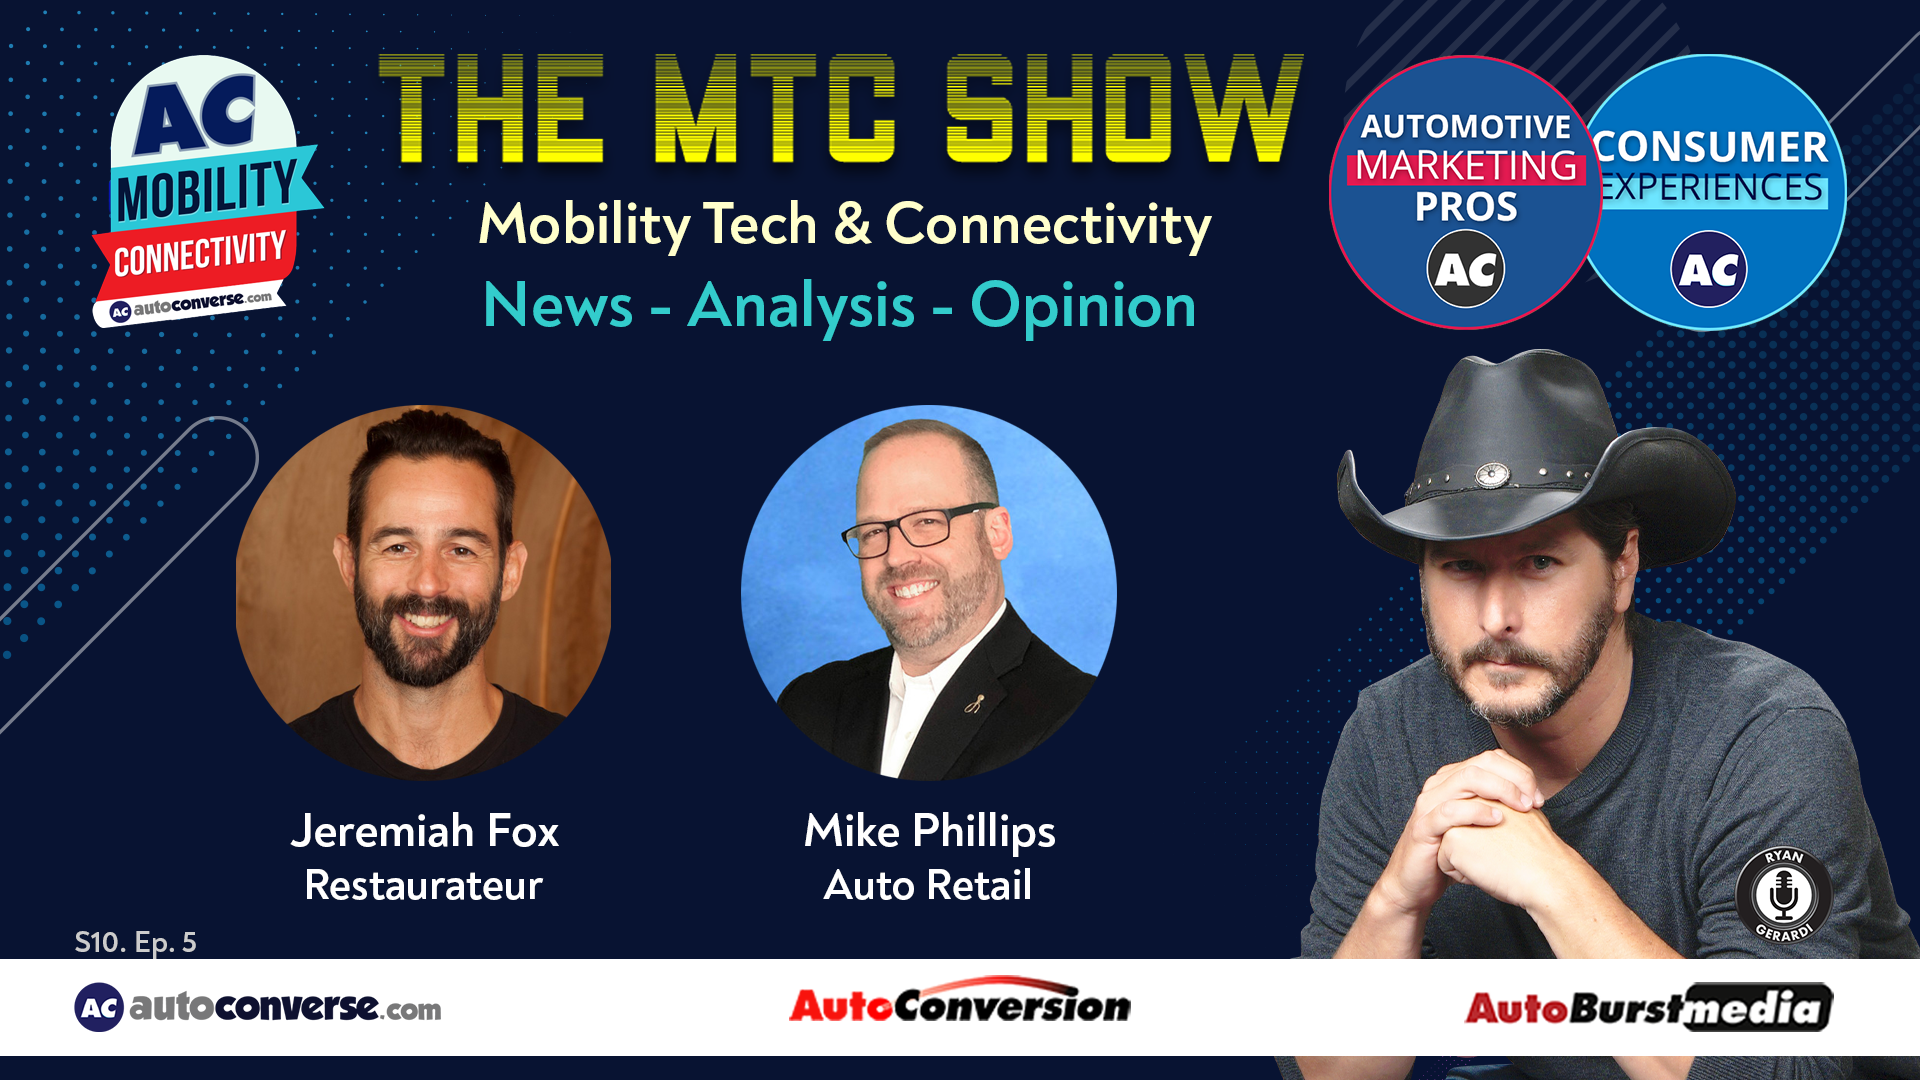 WED OCT 27. Hertz Goes EV, Tesla Big in China, and the Looming Vaccine Passport Effect